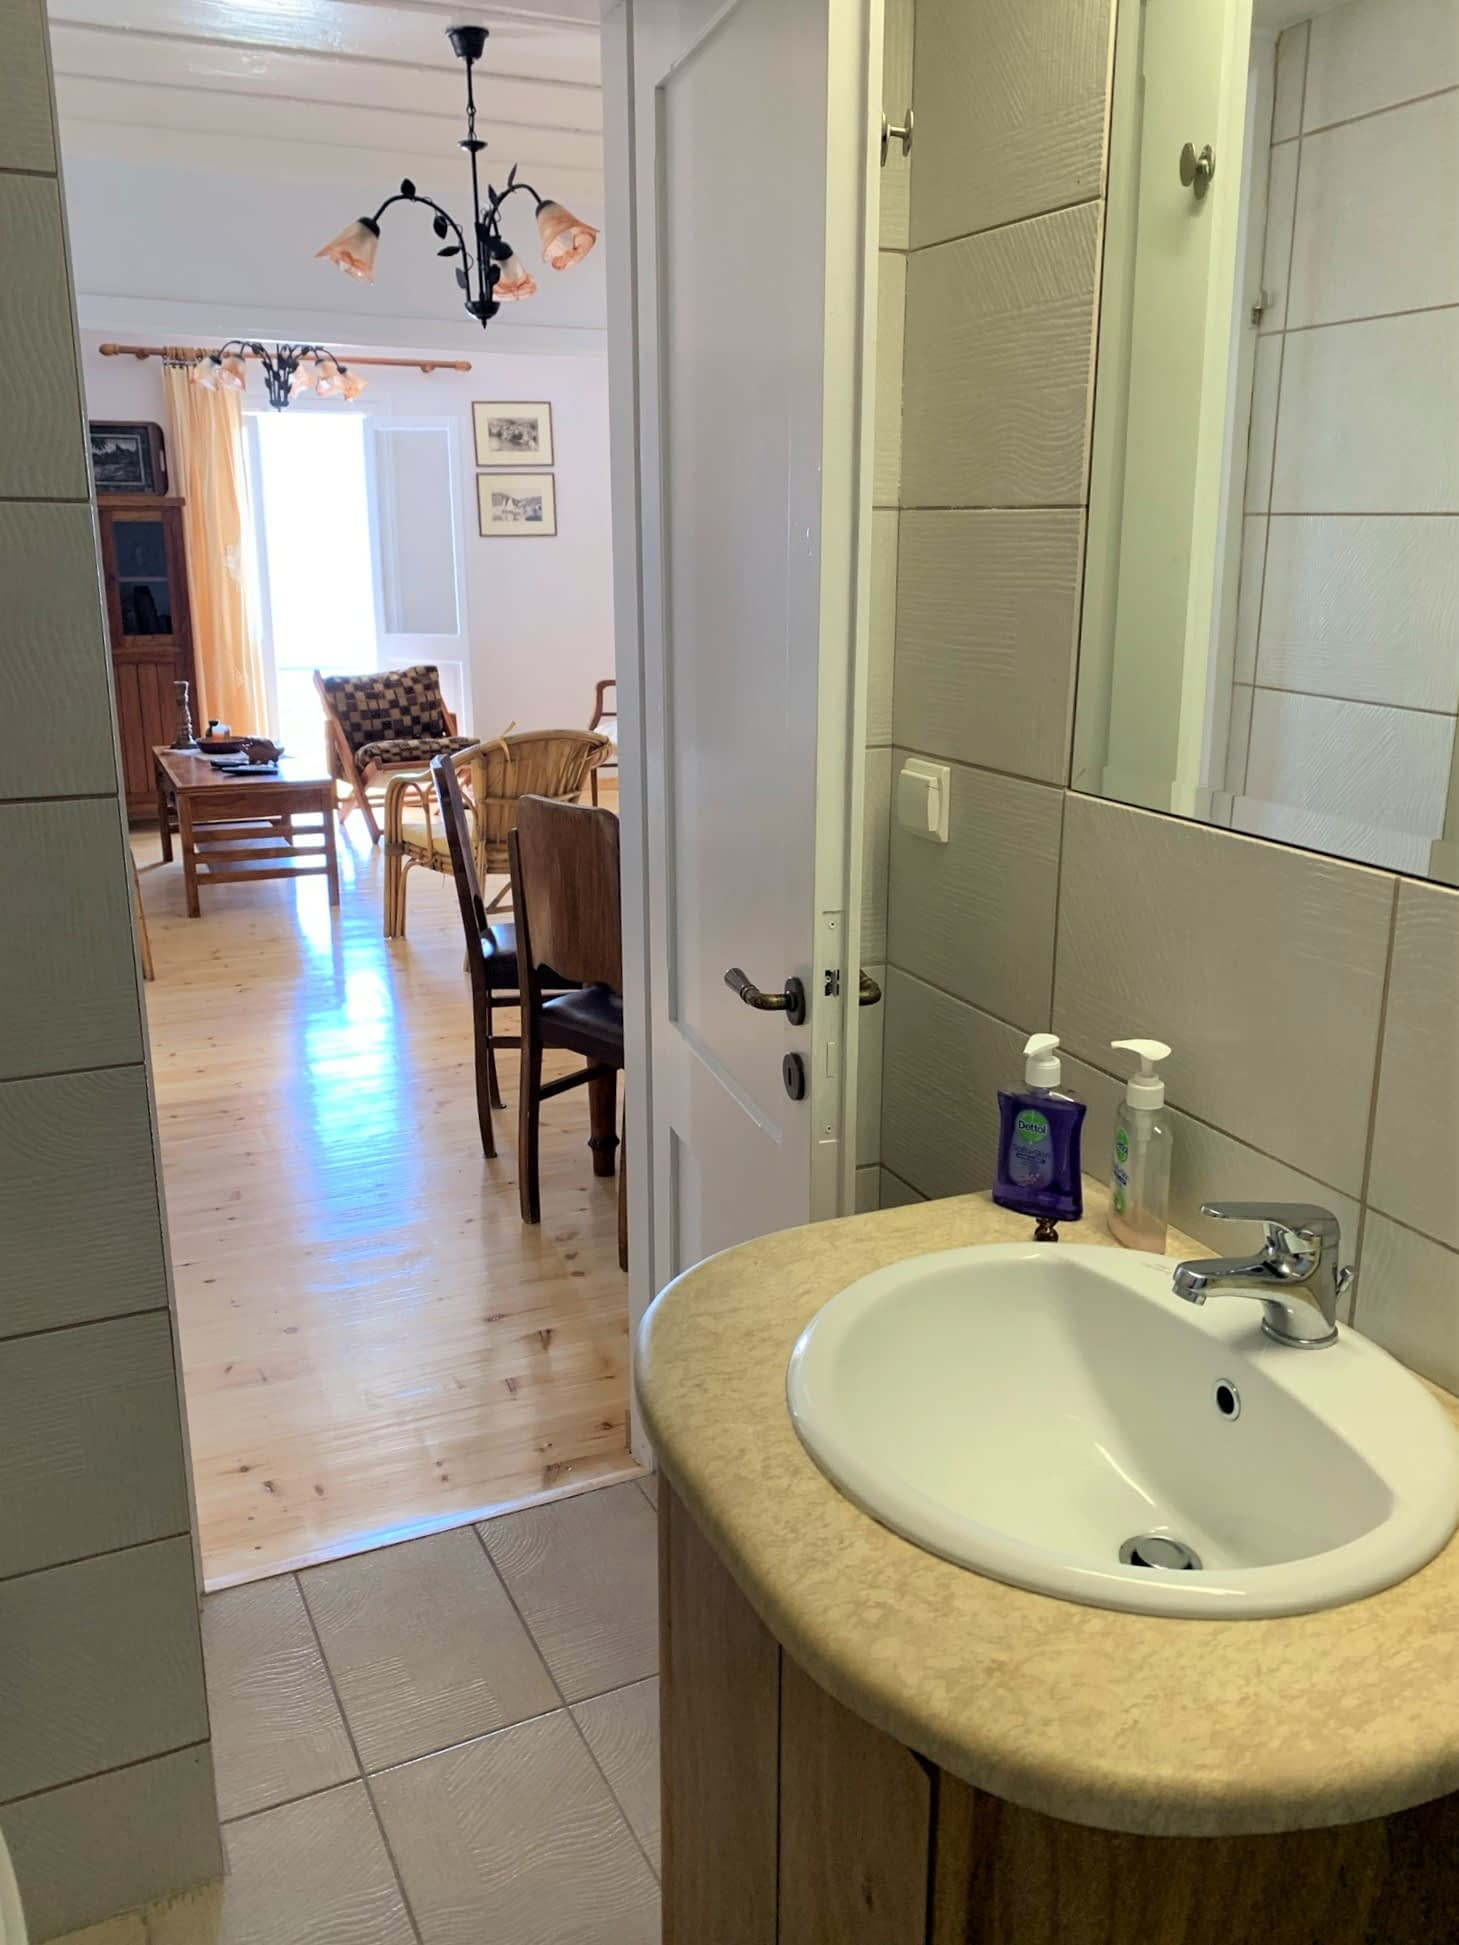 Bathroom of house to rent in Ithaca Greece, Kioni